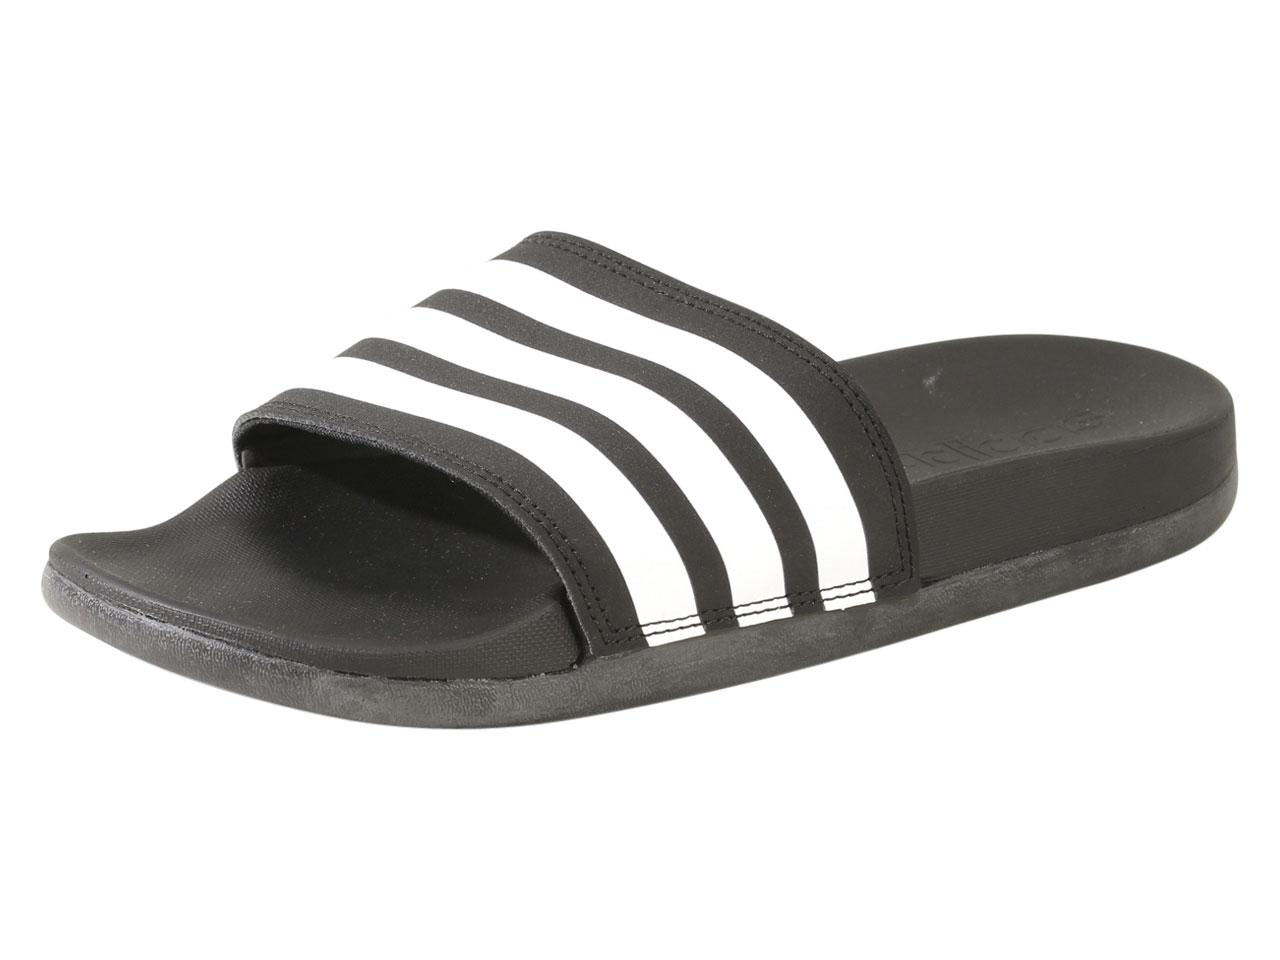 f8822c442e35 Adidas Men s Adilette Comfort Cloudfoam Plus Slides Sandals Shoes